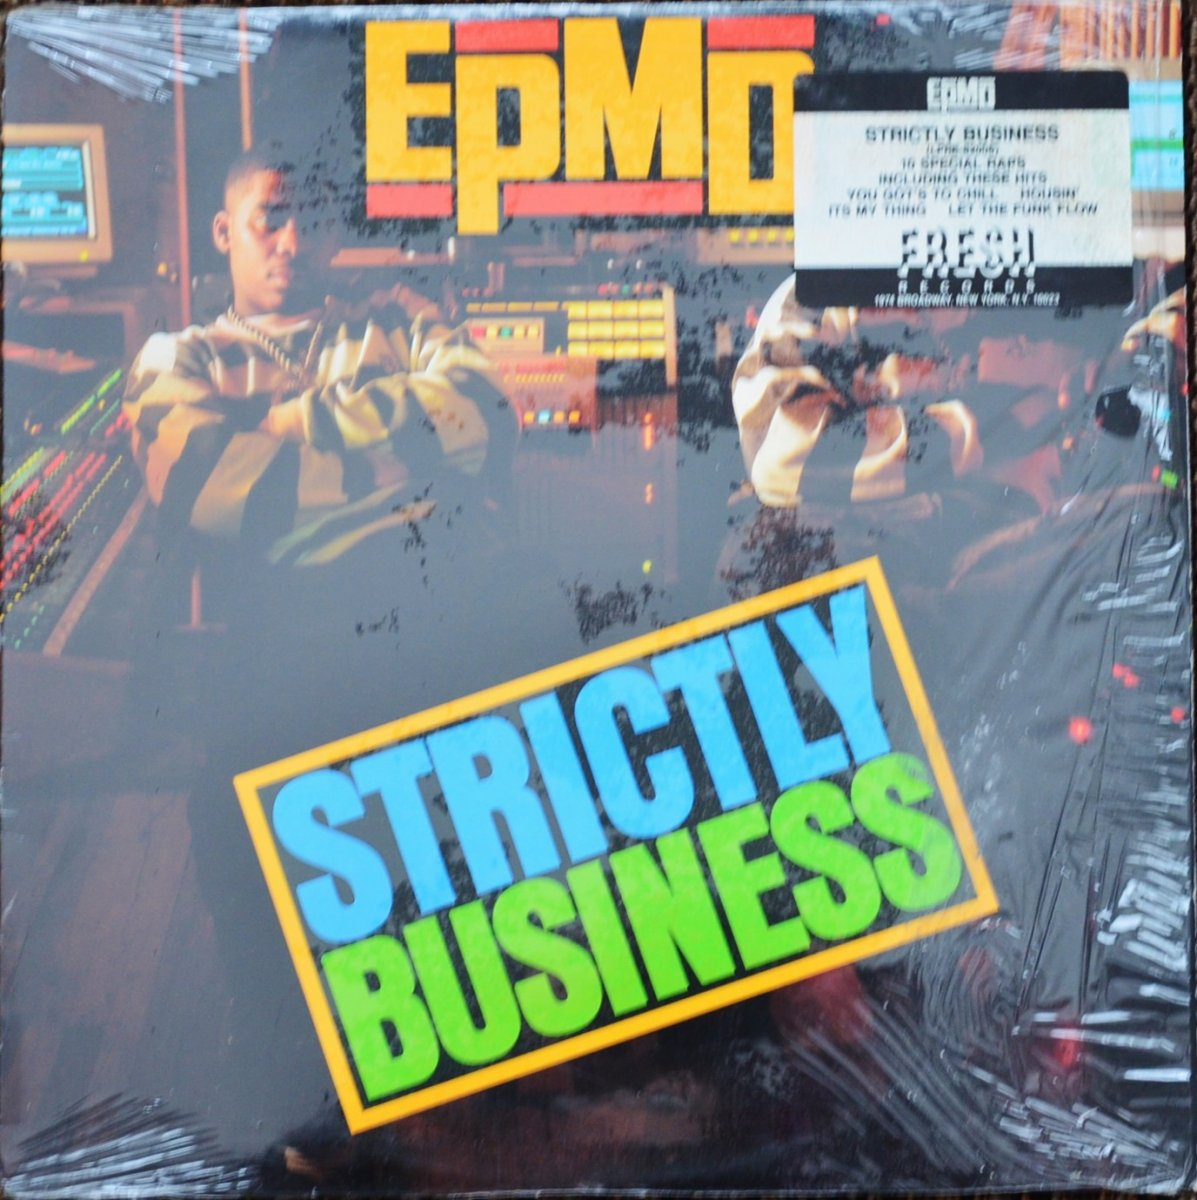 EPMD / STRICTLY BUSINESS (1LP)